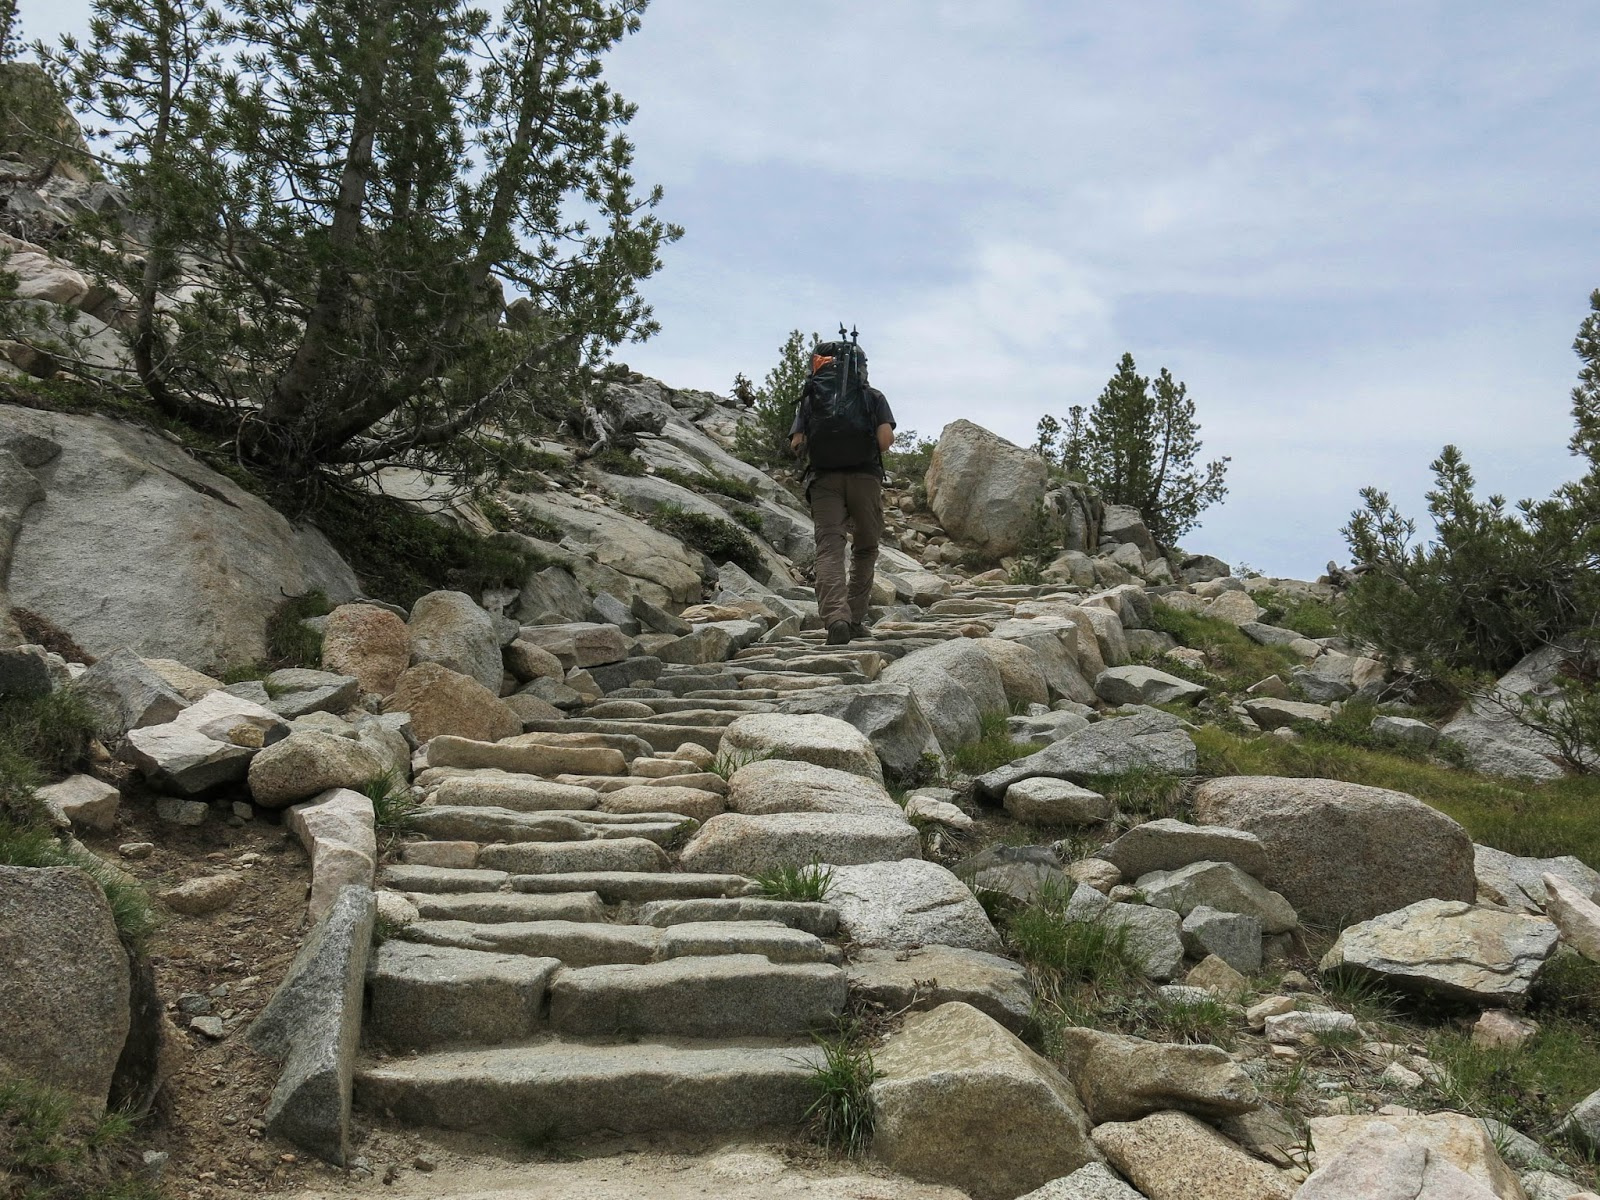 Stone Staircase in Sabrina Basin